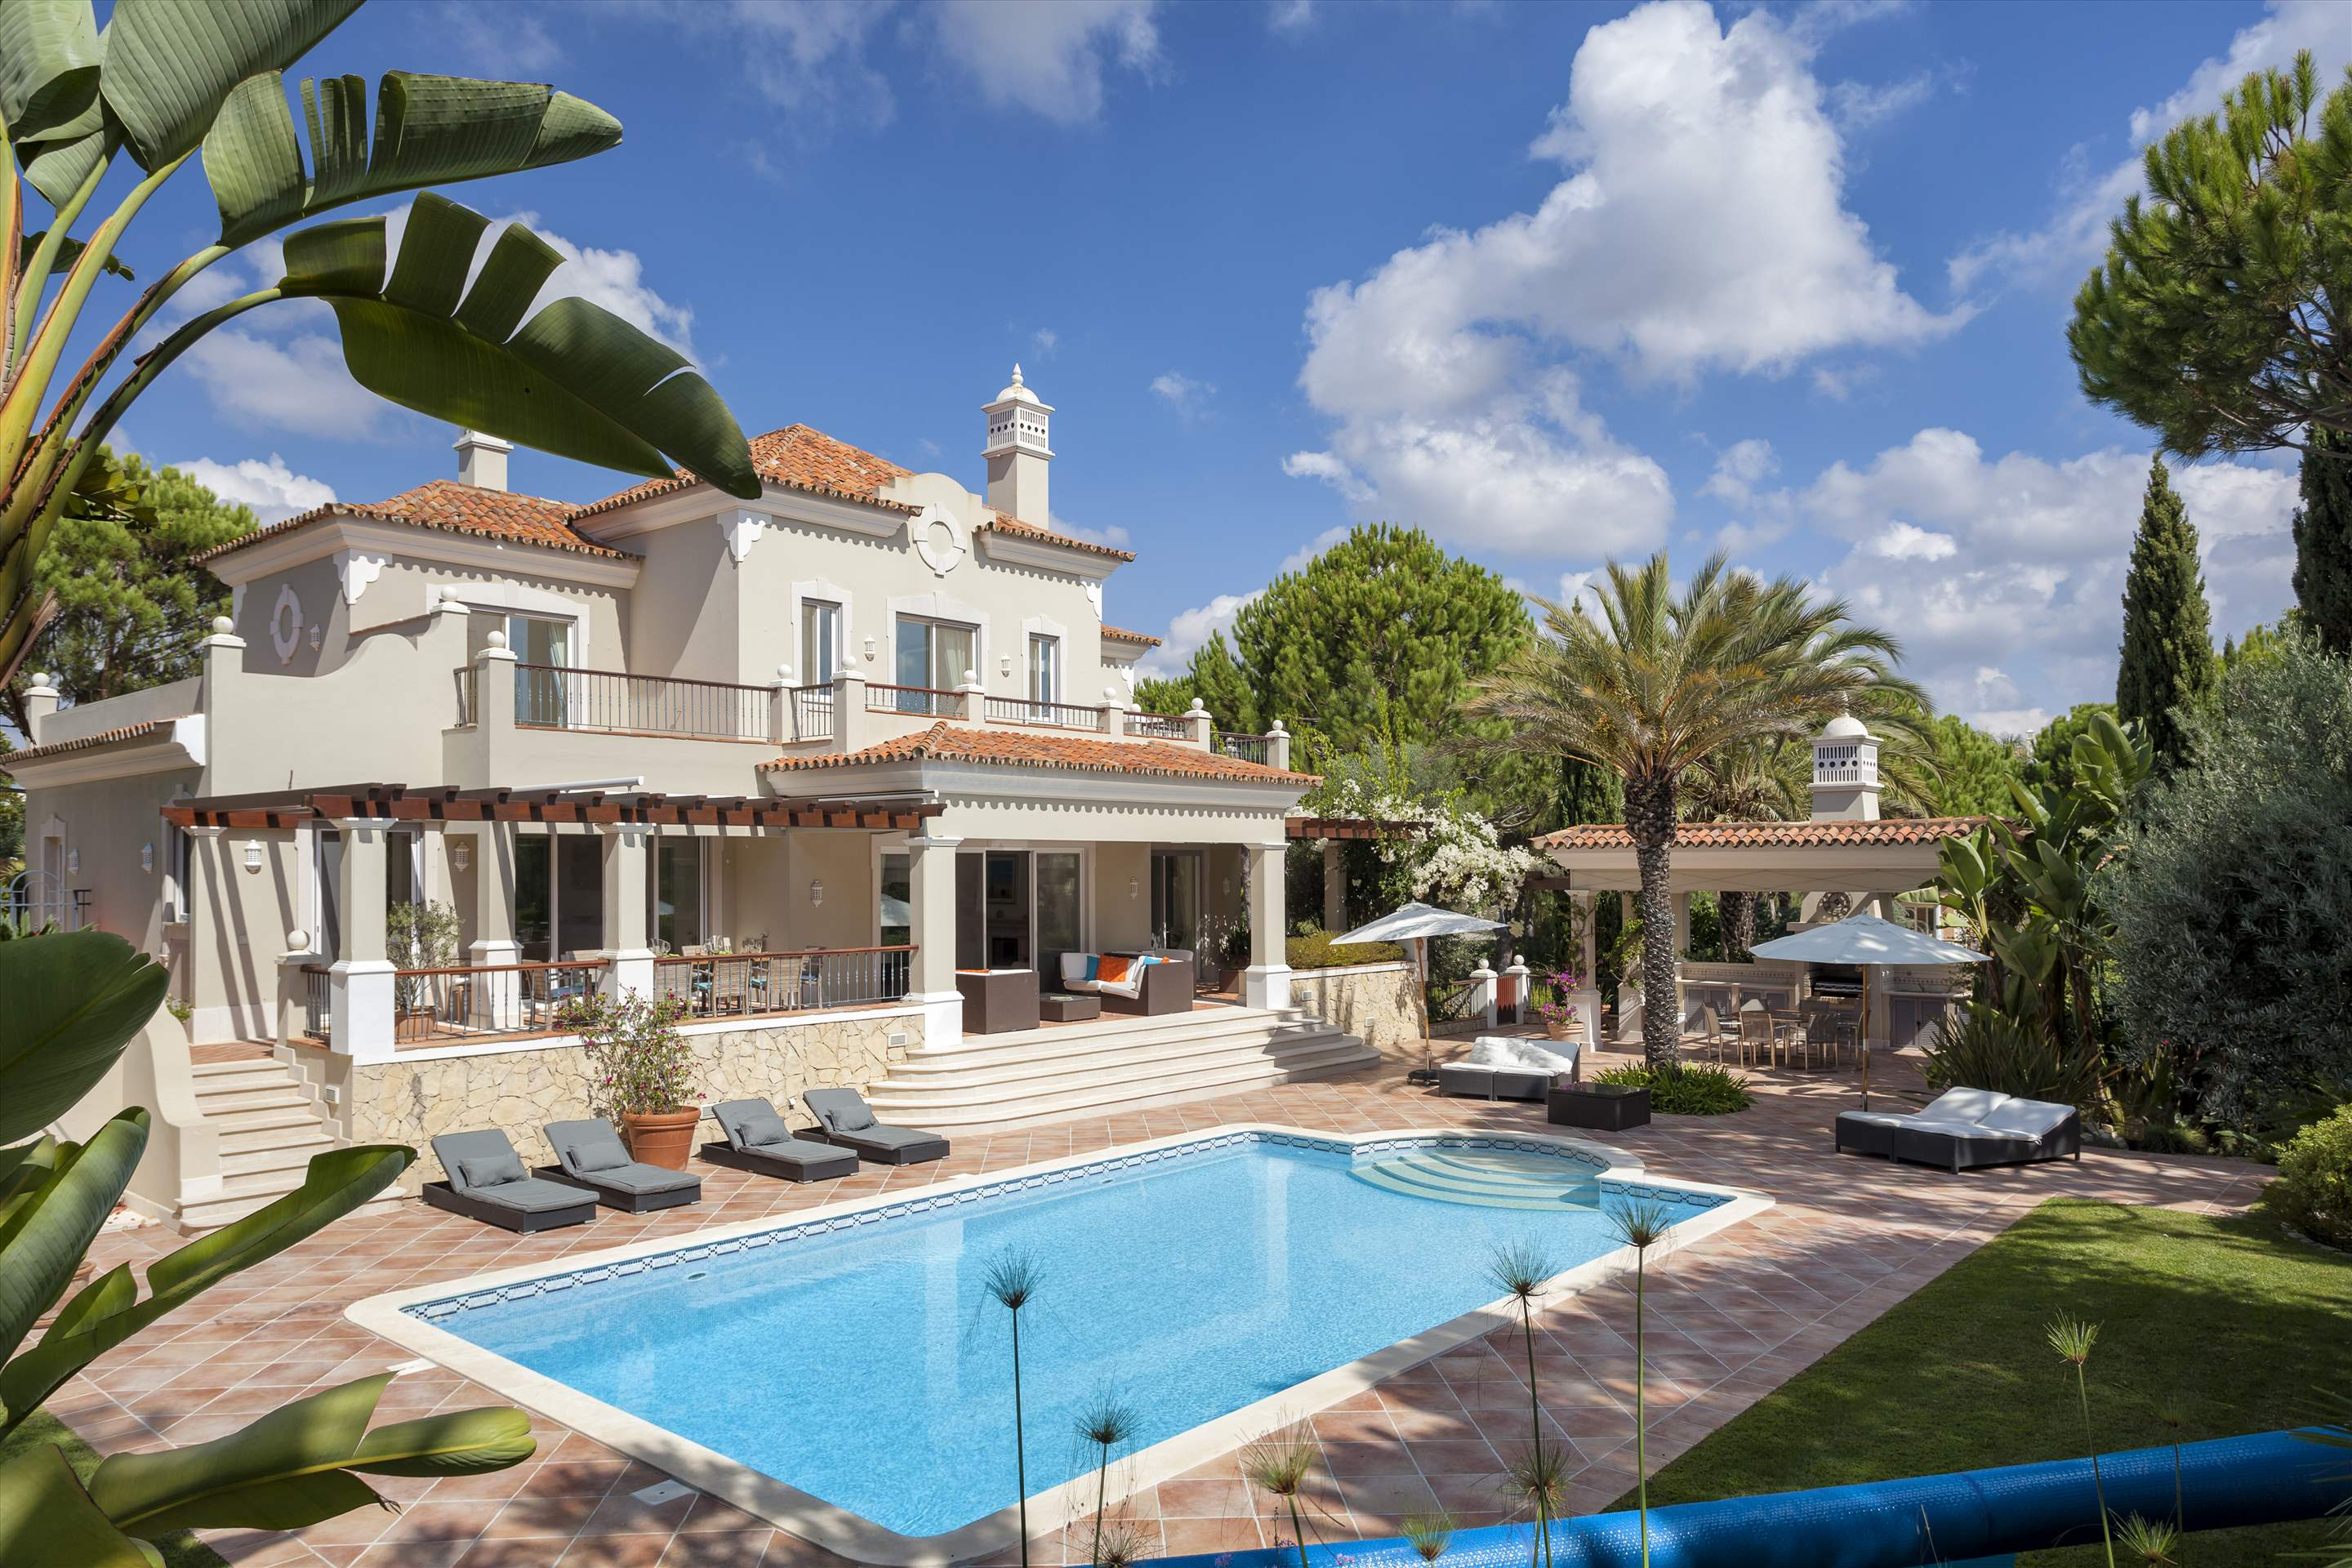 Villa Campainha, 4 Bedroom Rental, 4 bedroom villa in Quinta do Lago, Algarve Photo #1